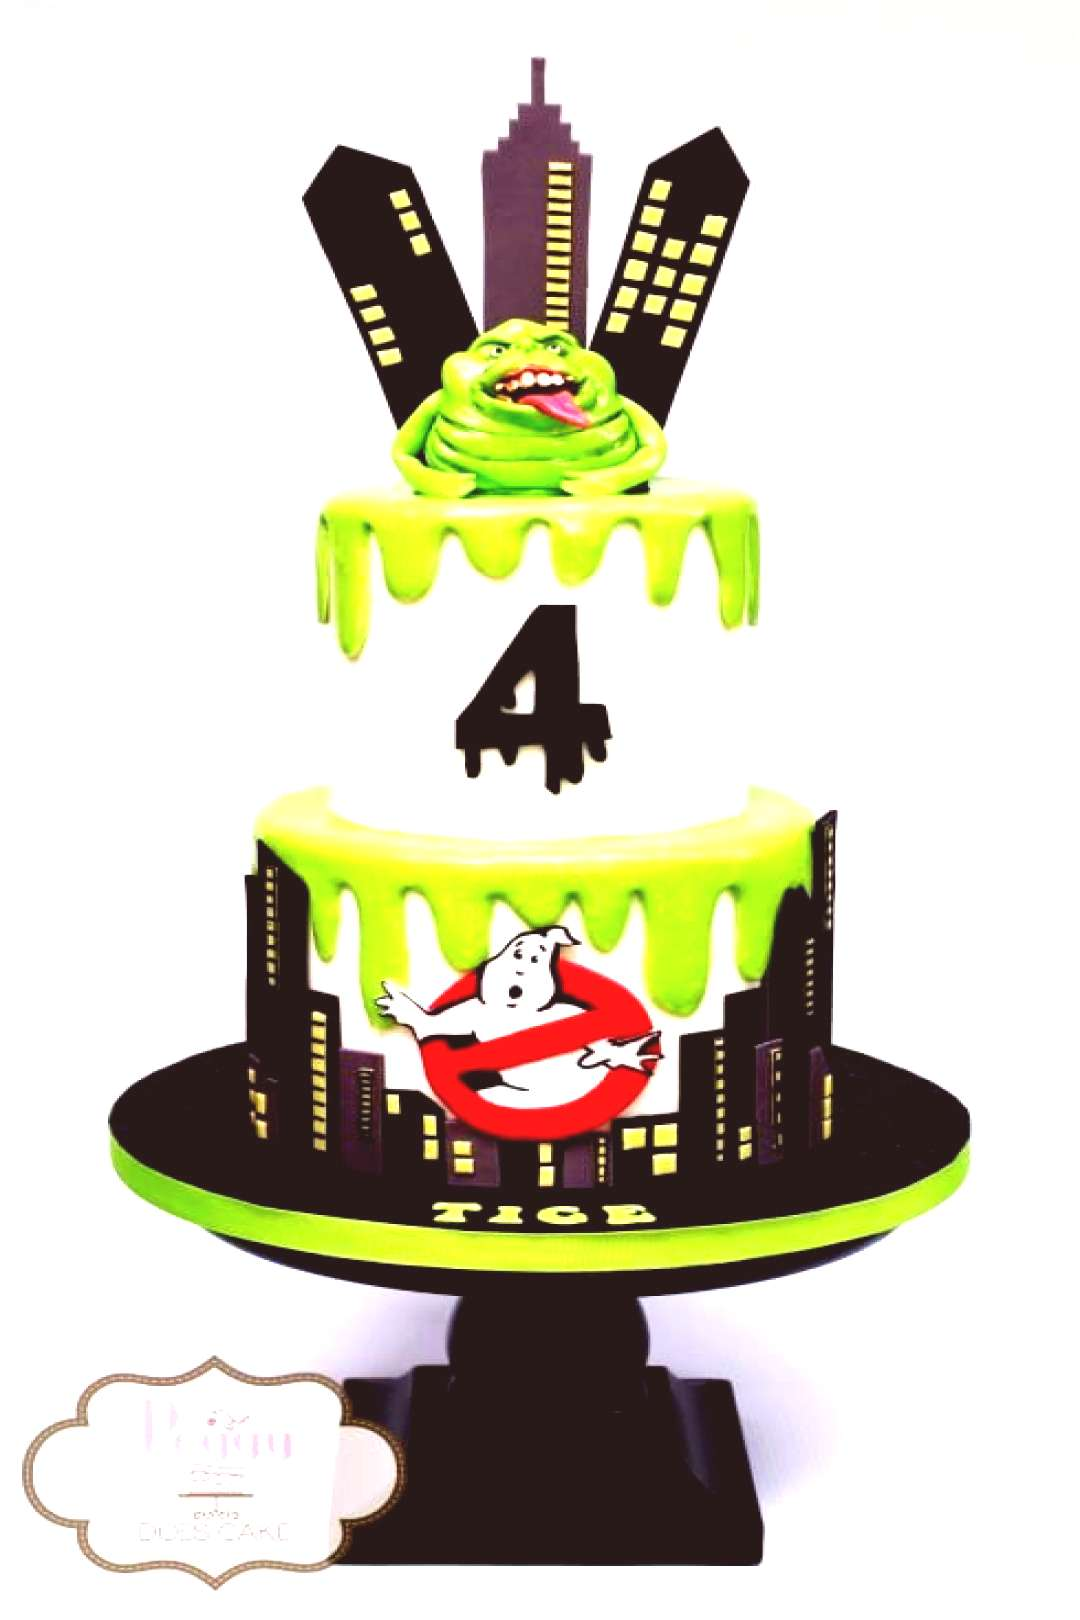 Ghostbusters Birthday Cake - Ghostbusters Party ideas Ghostbusters Birthday Cake – Ghostbusters